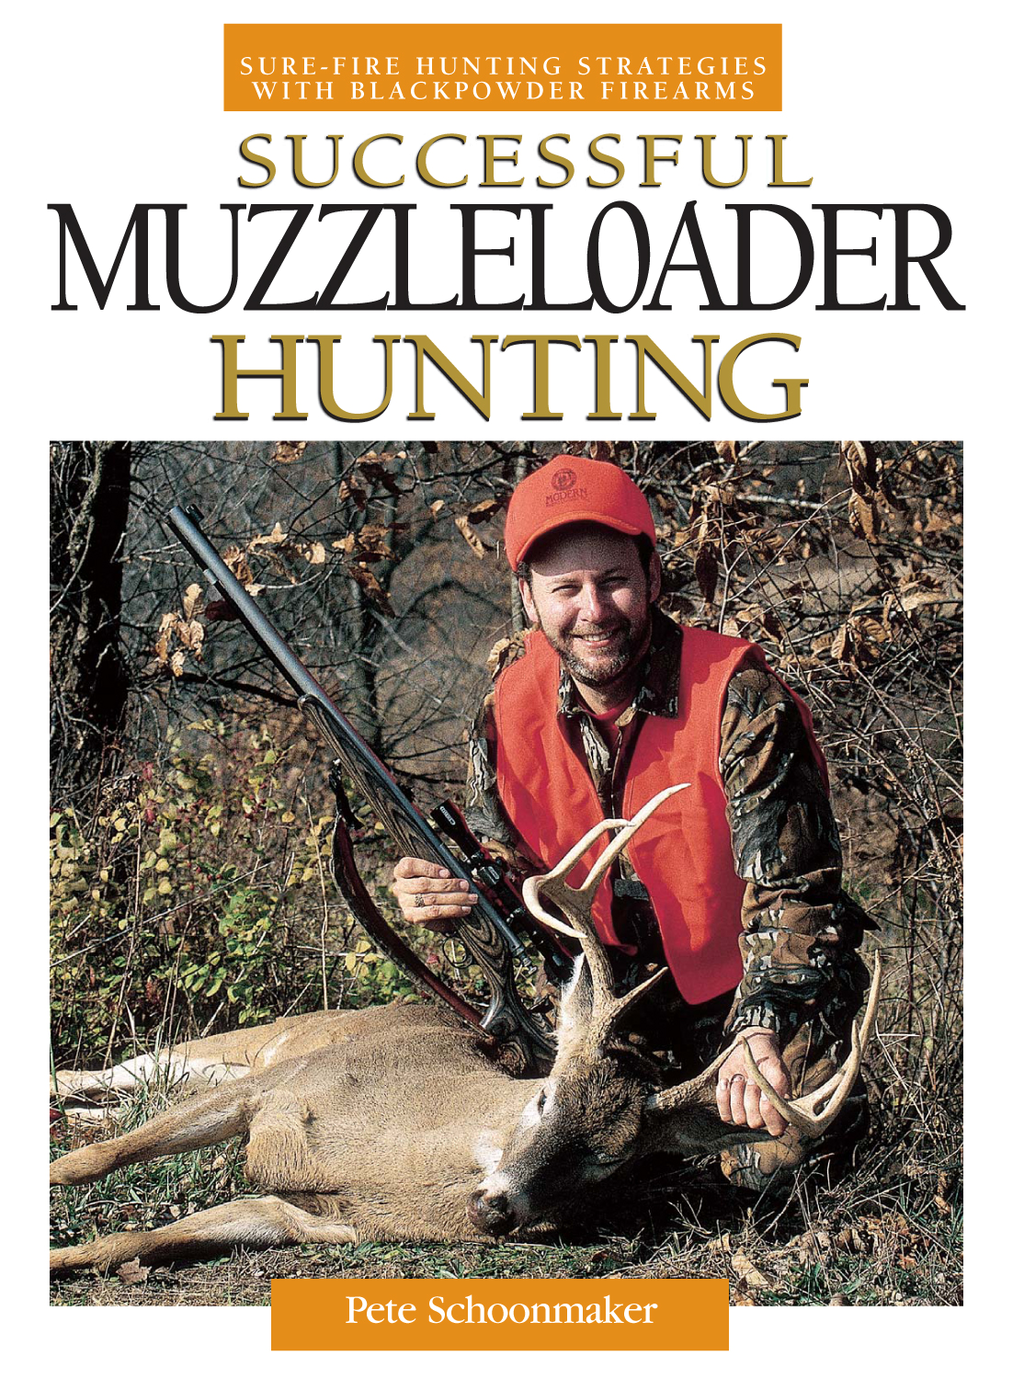 Successful Muzzleloader Hunting Sure-fire Hunting Strategies With Blackpowder Firearms